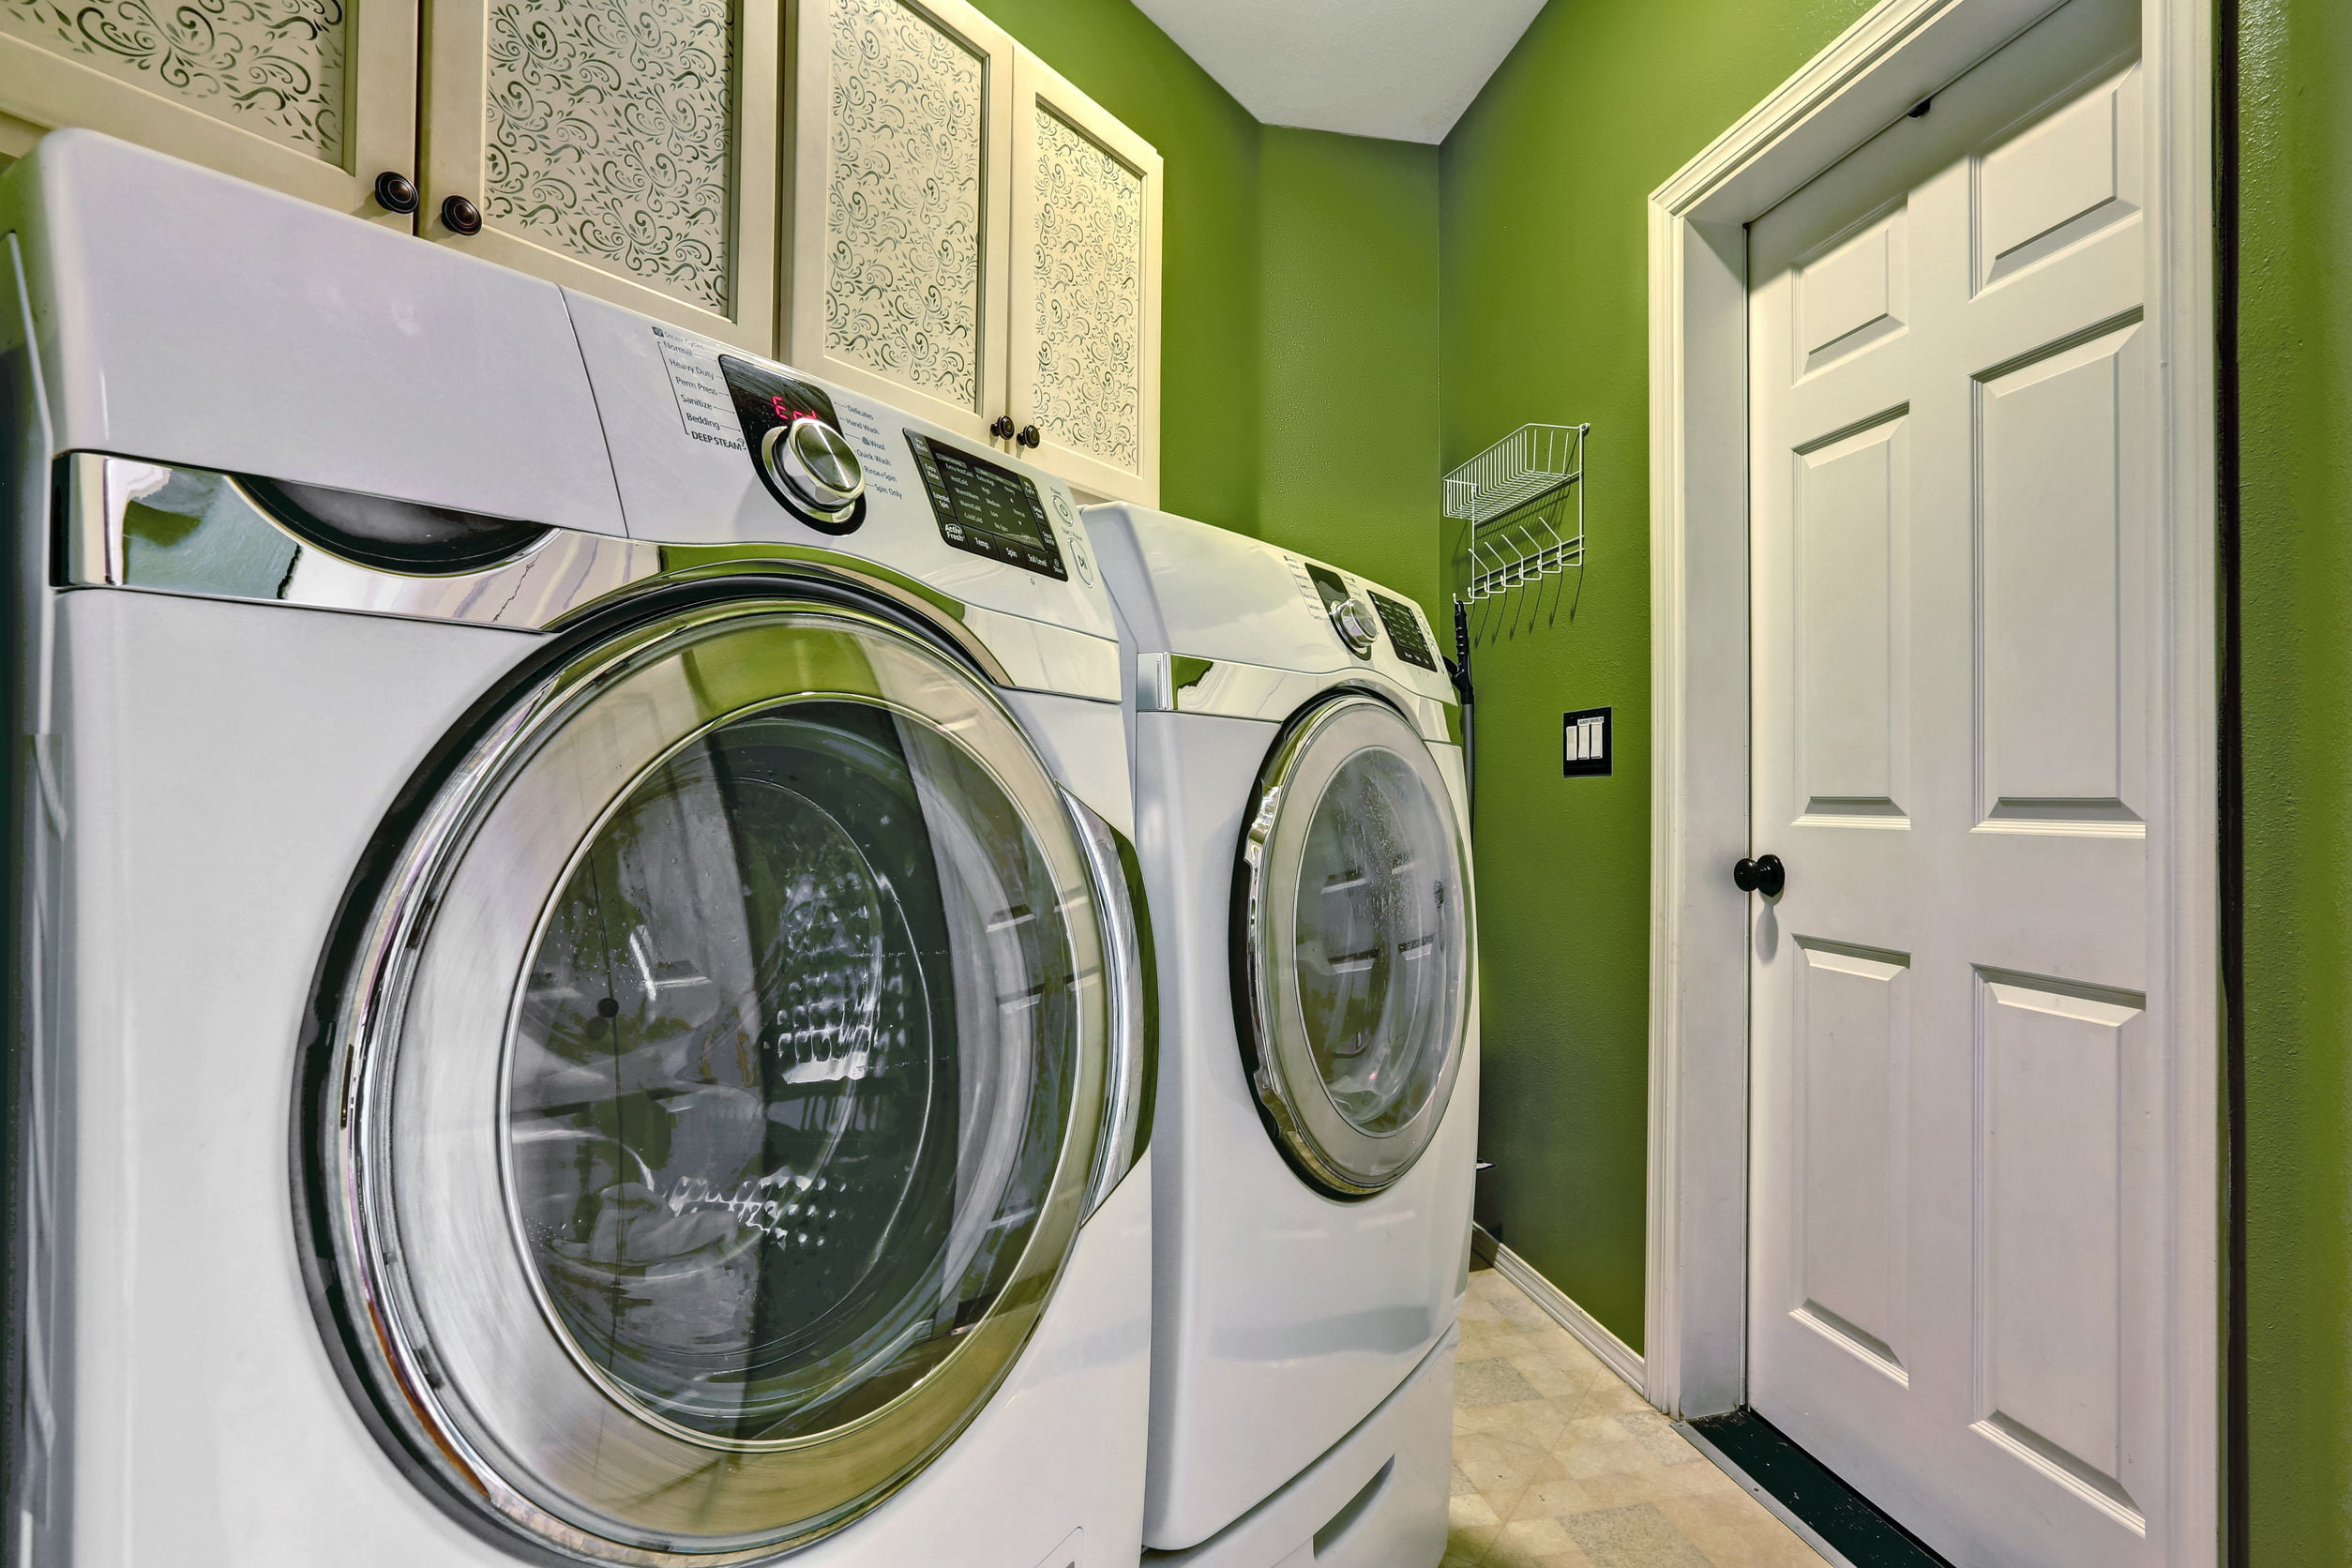 Its not just spin how to buy a washer and dryer digital trends washer dryer in green room solutioingenieria Choice Image